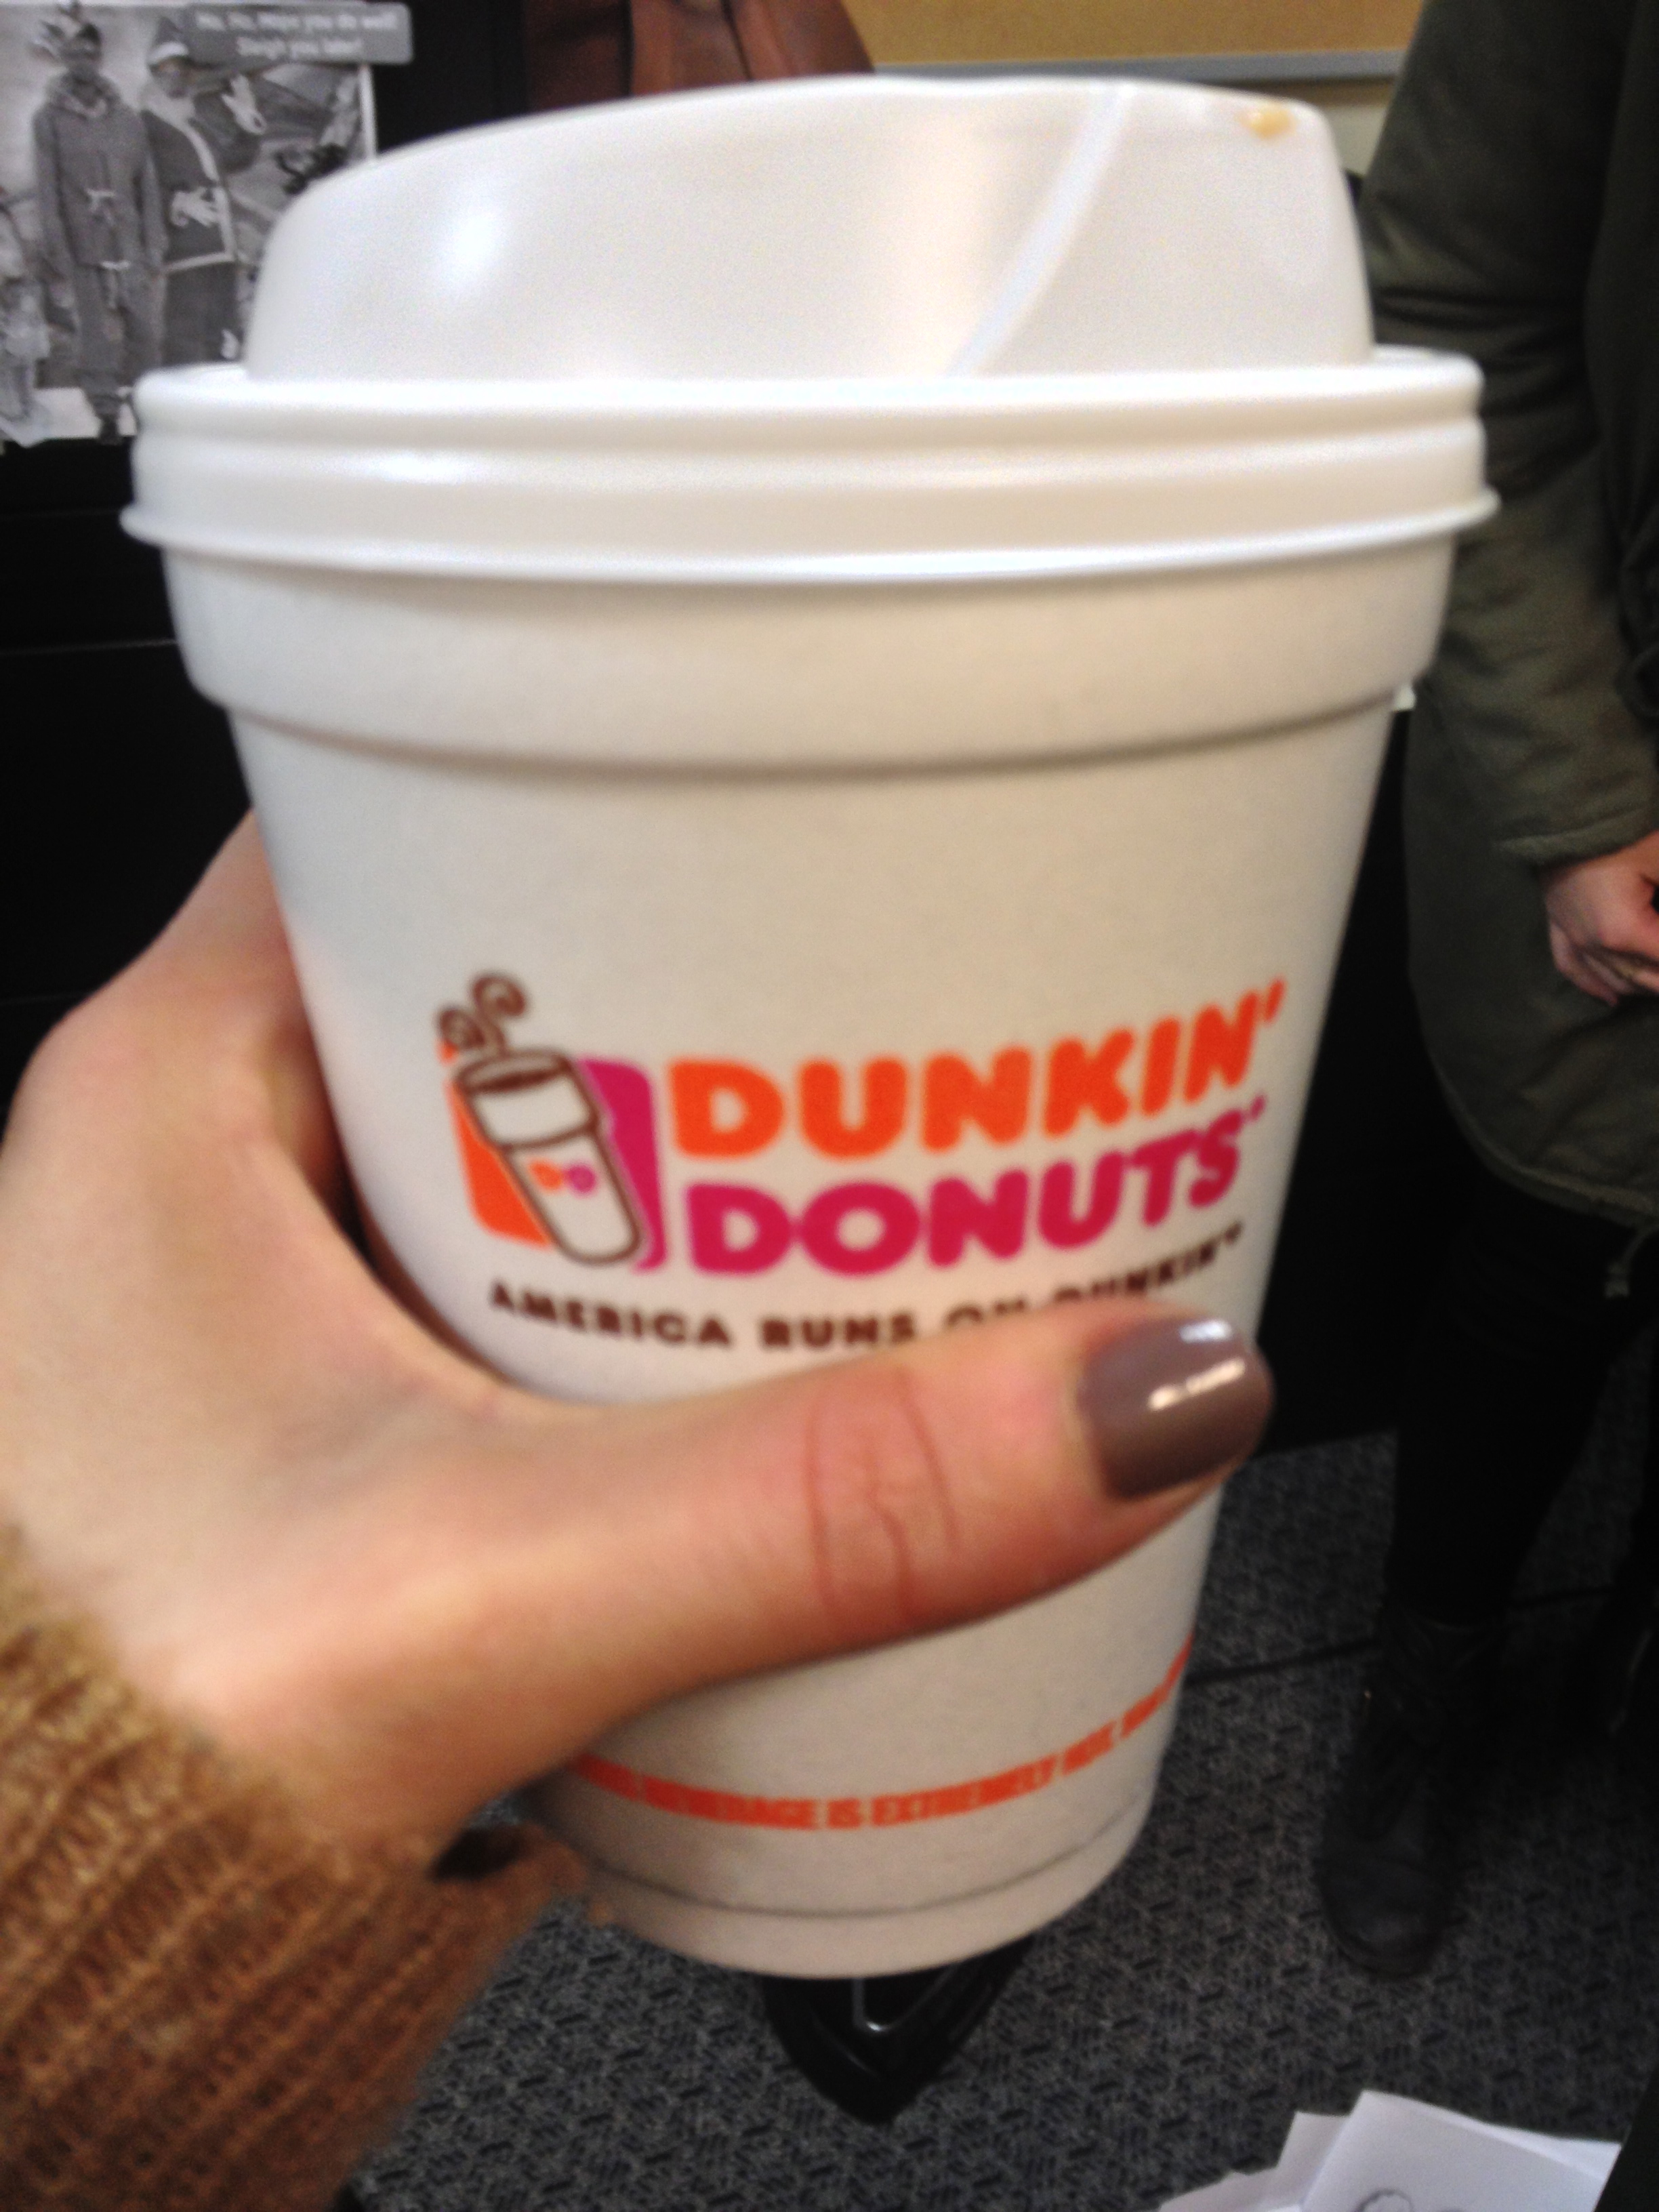 One of the best things about Chicago -- the Dunkin Donuts.